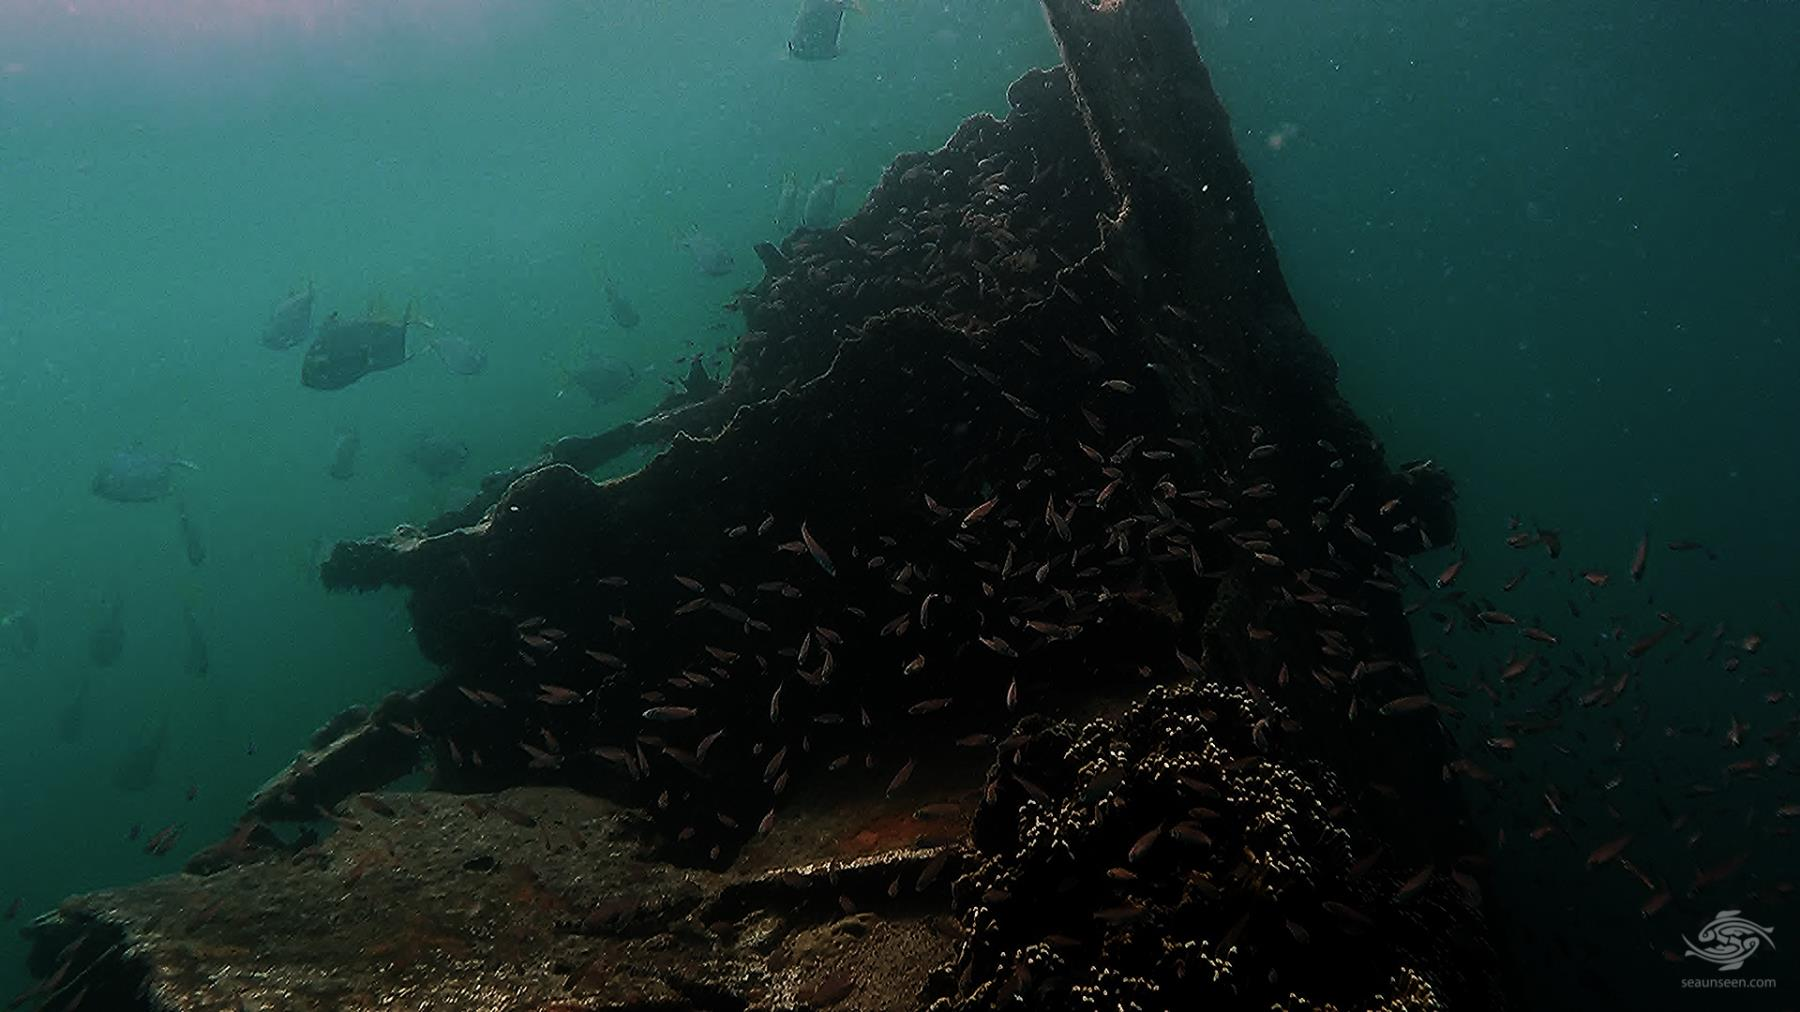 Looking up the wreck from below